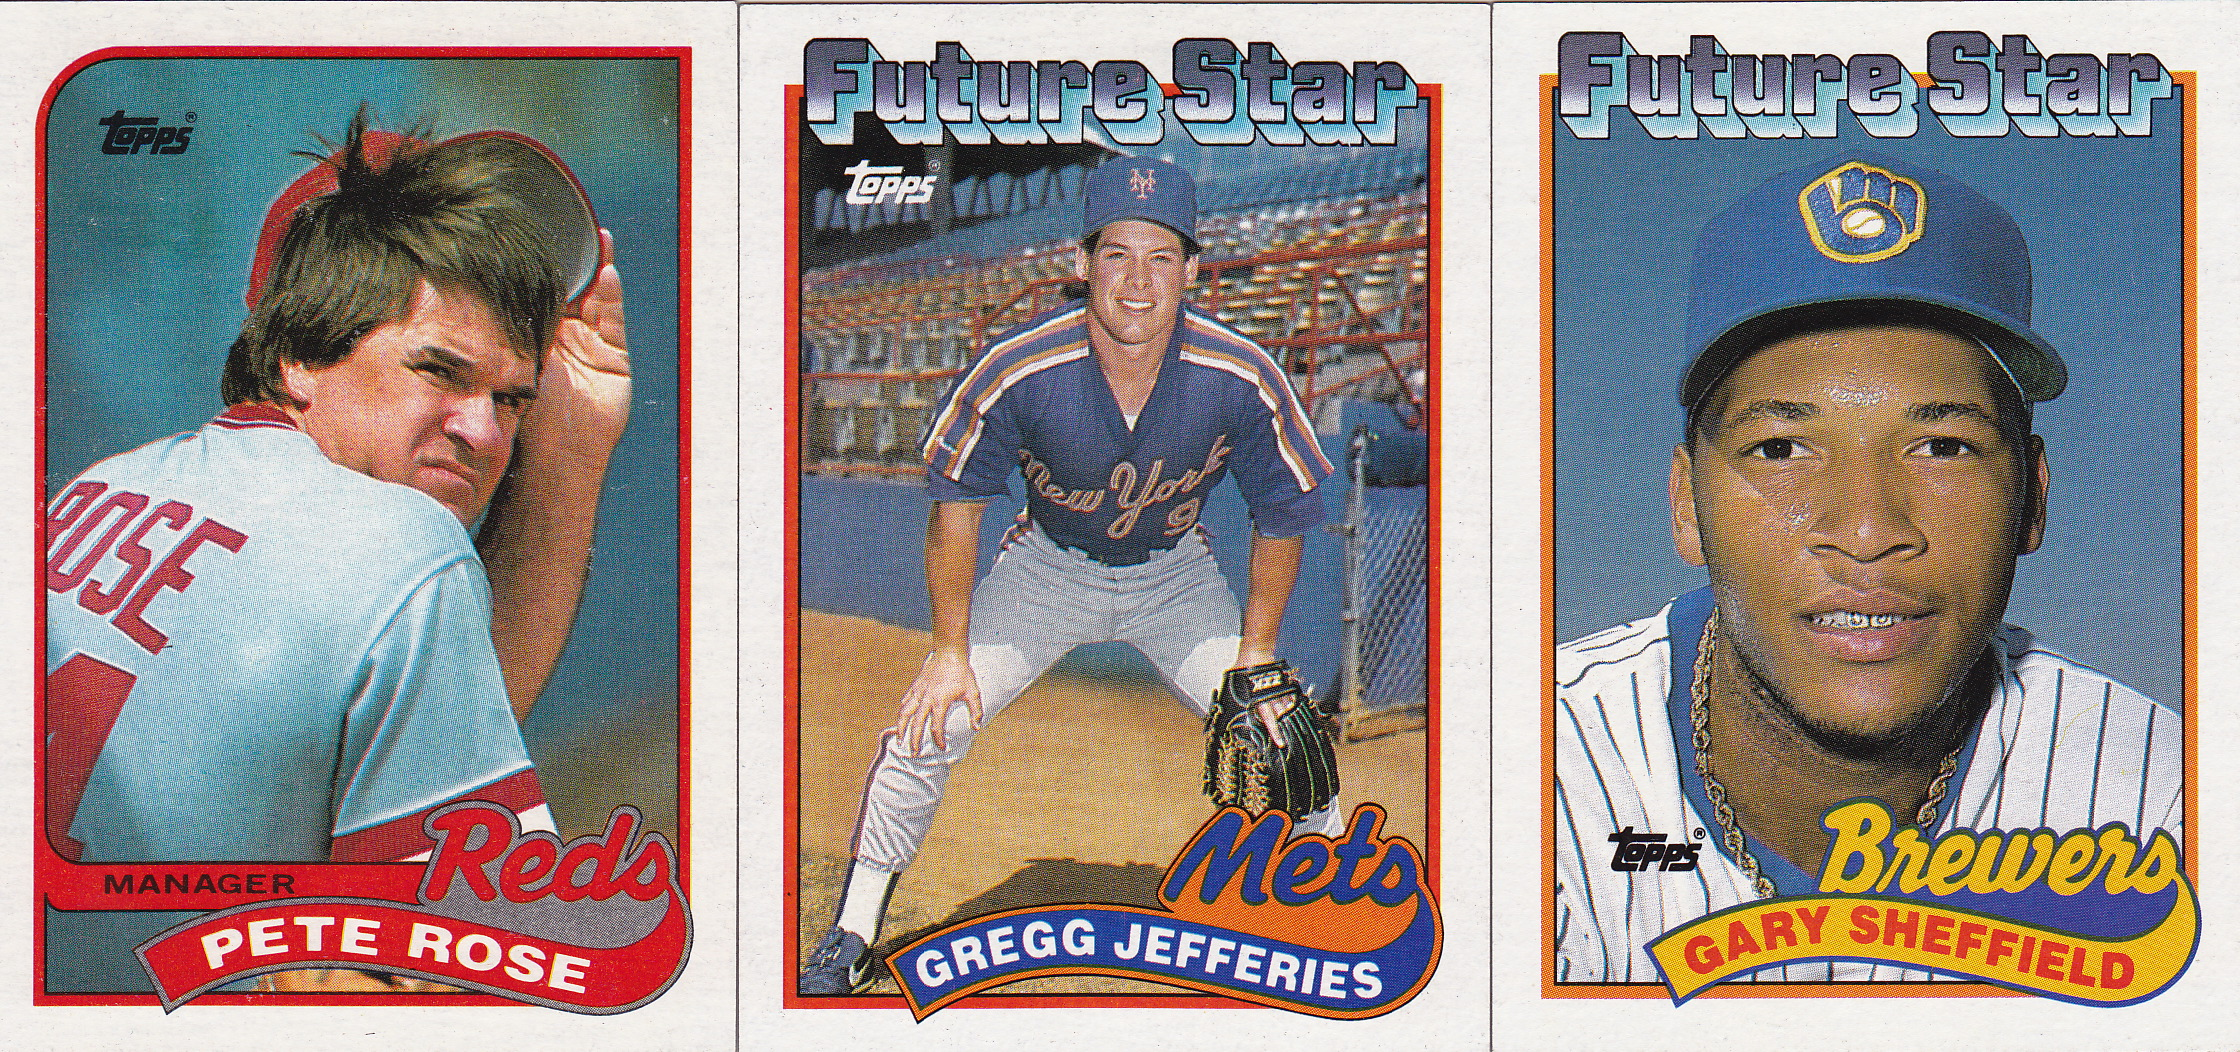 Completed Set 1989 Topps Lifetime Topps Project